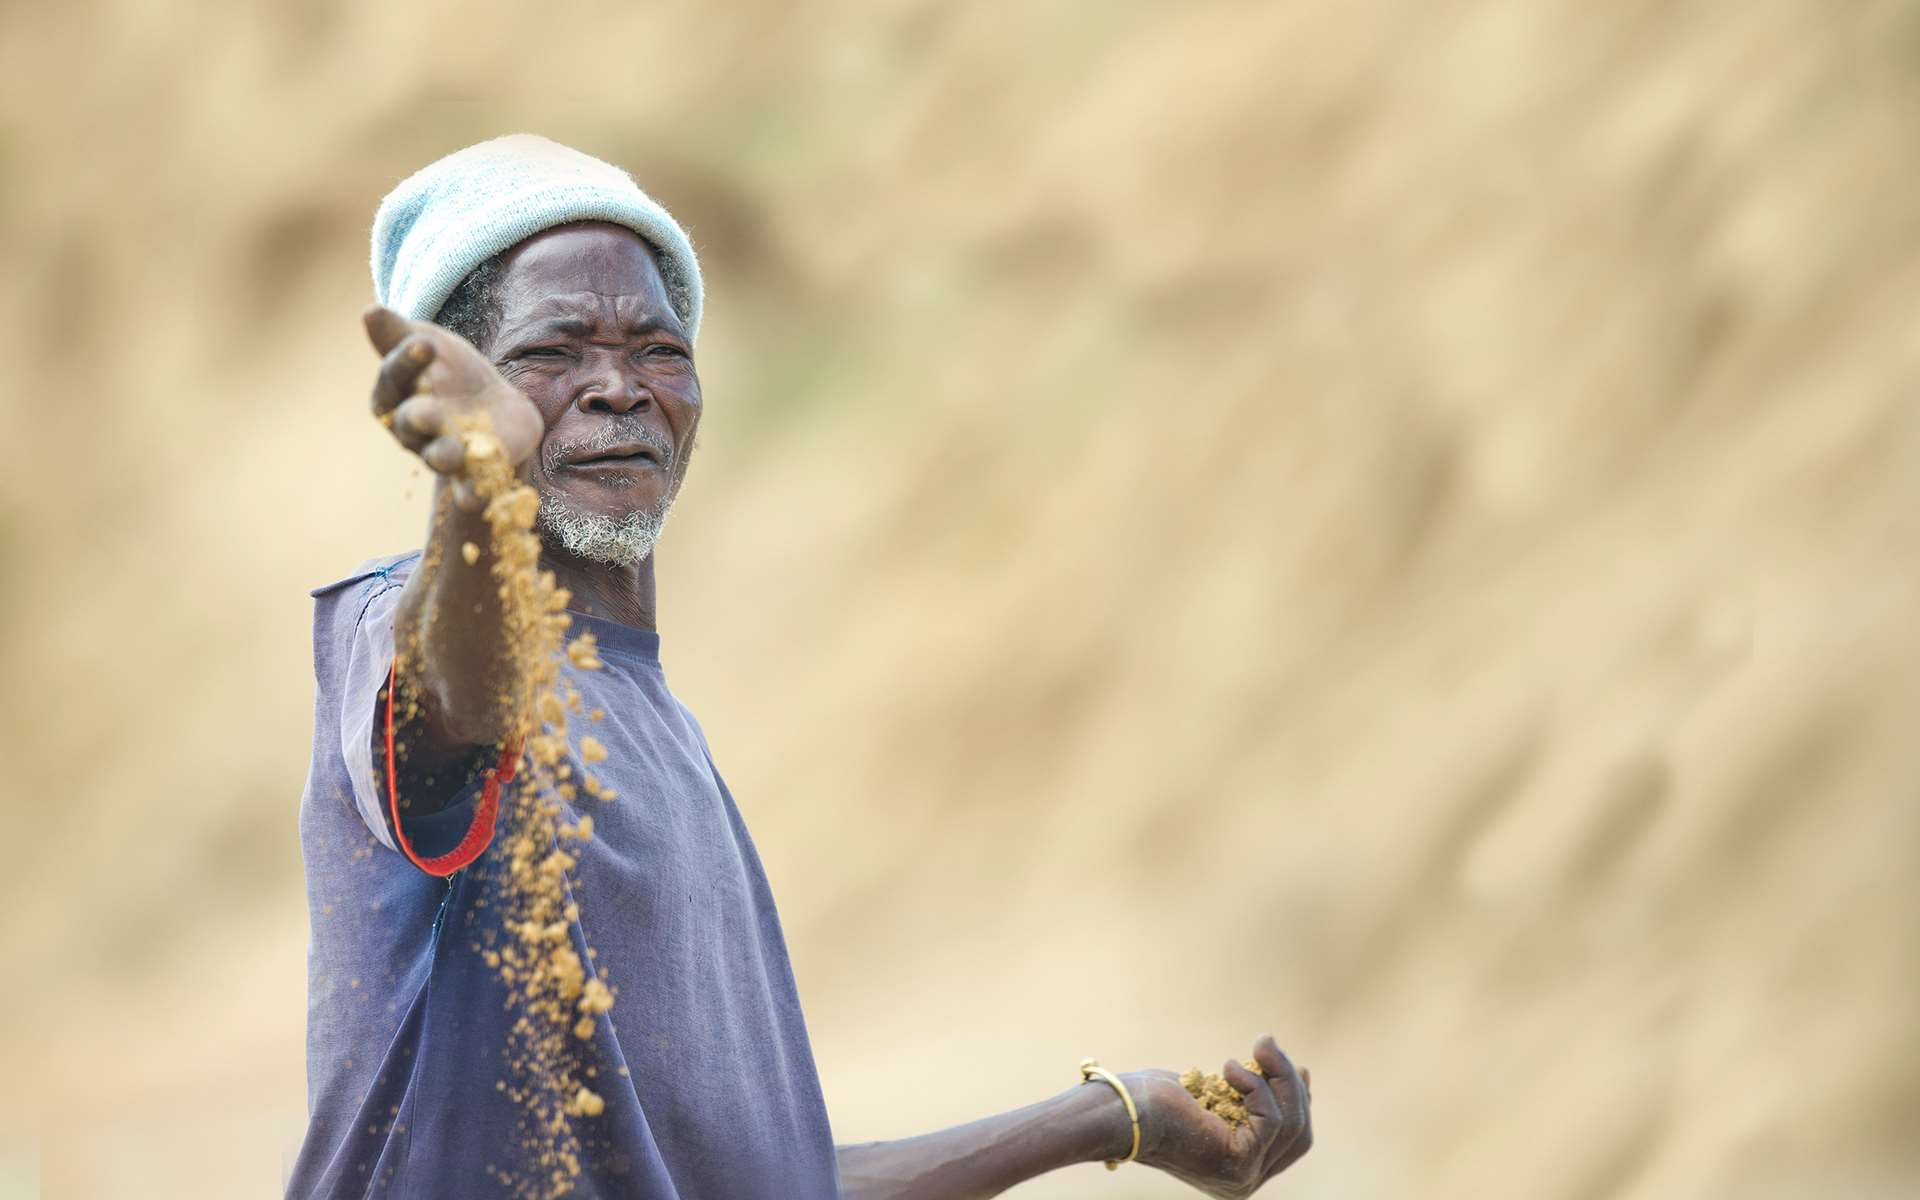 Mbole, a farmer in Ghana, holding up soil that has become so degraded that he can no longer farm on it. Photo credit, Rowan Griffiths, Daily Mirror.